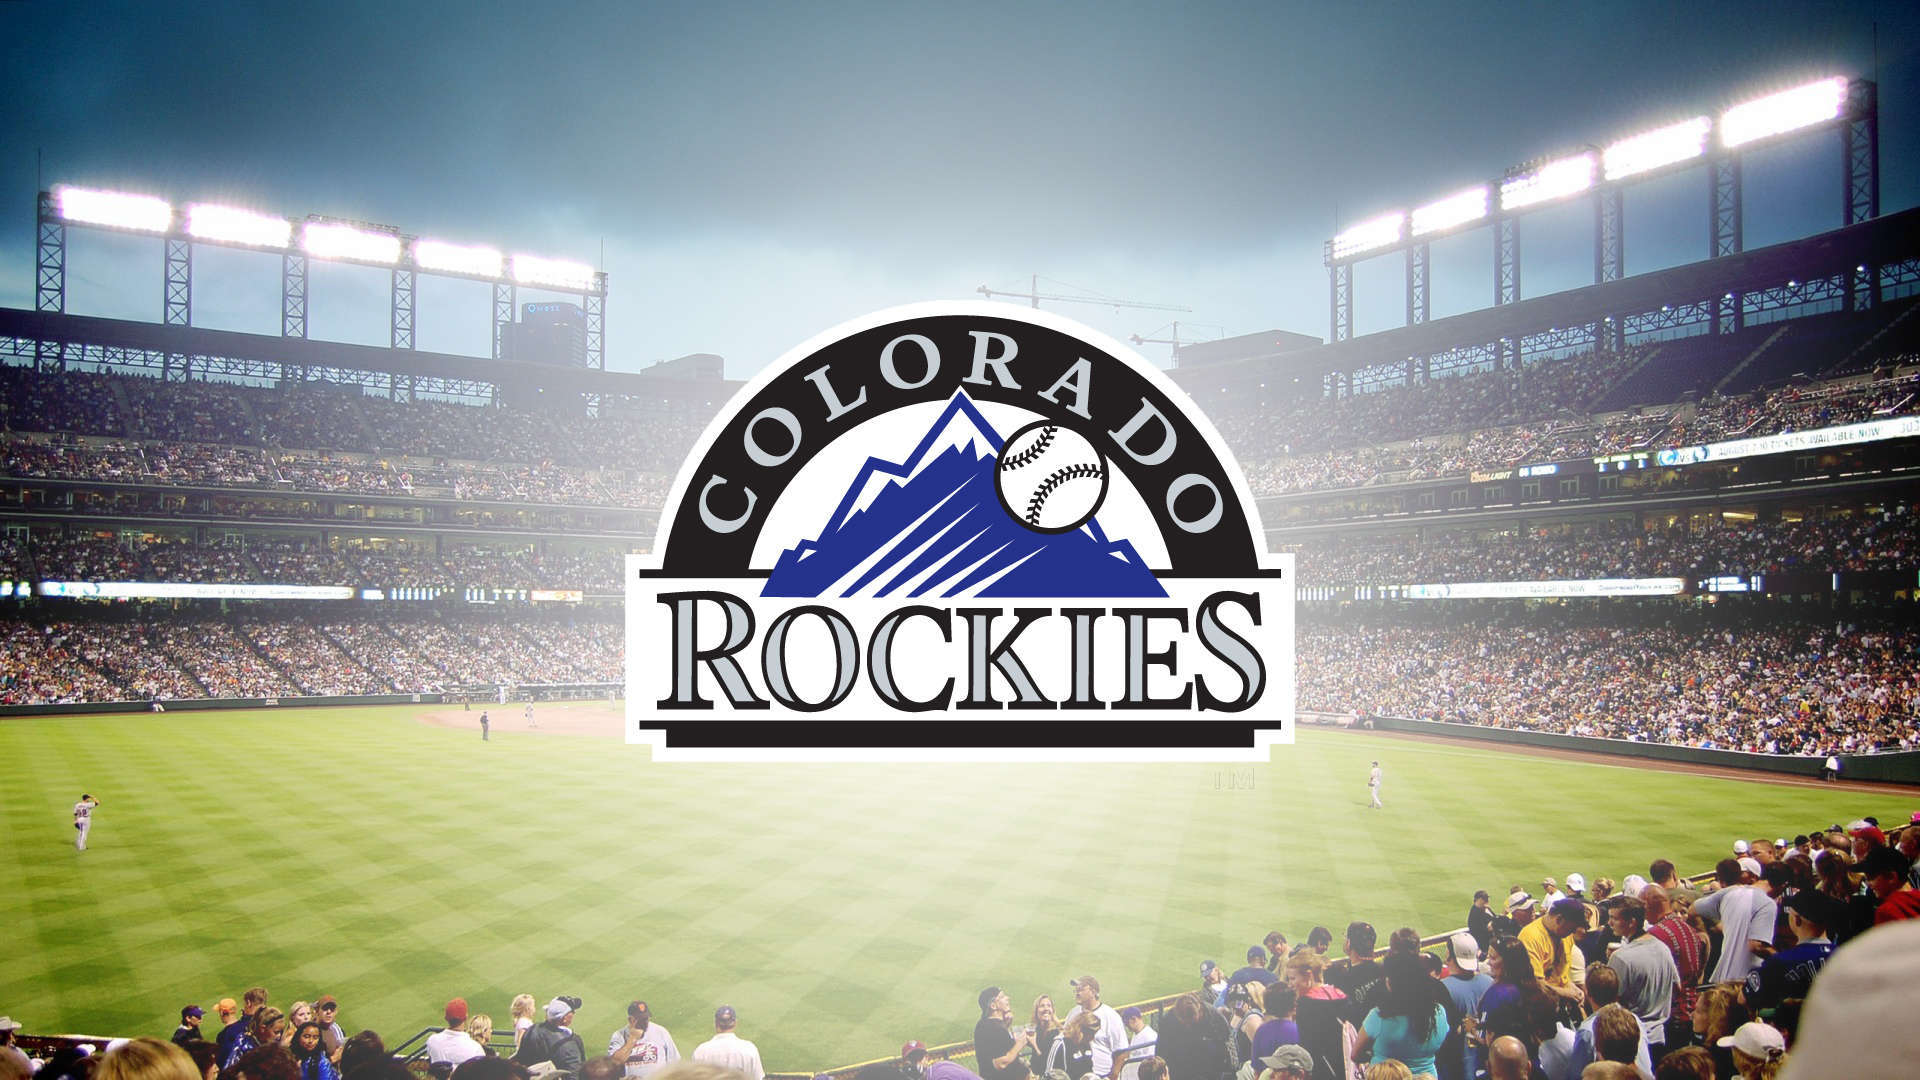 Wallpaper Colorado Rockies Logo Stadium HD Wallpaper Upload at April 1920x1080